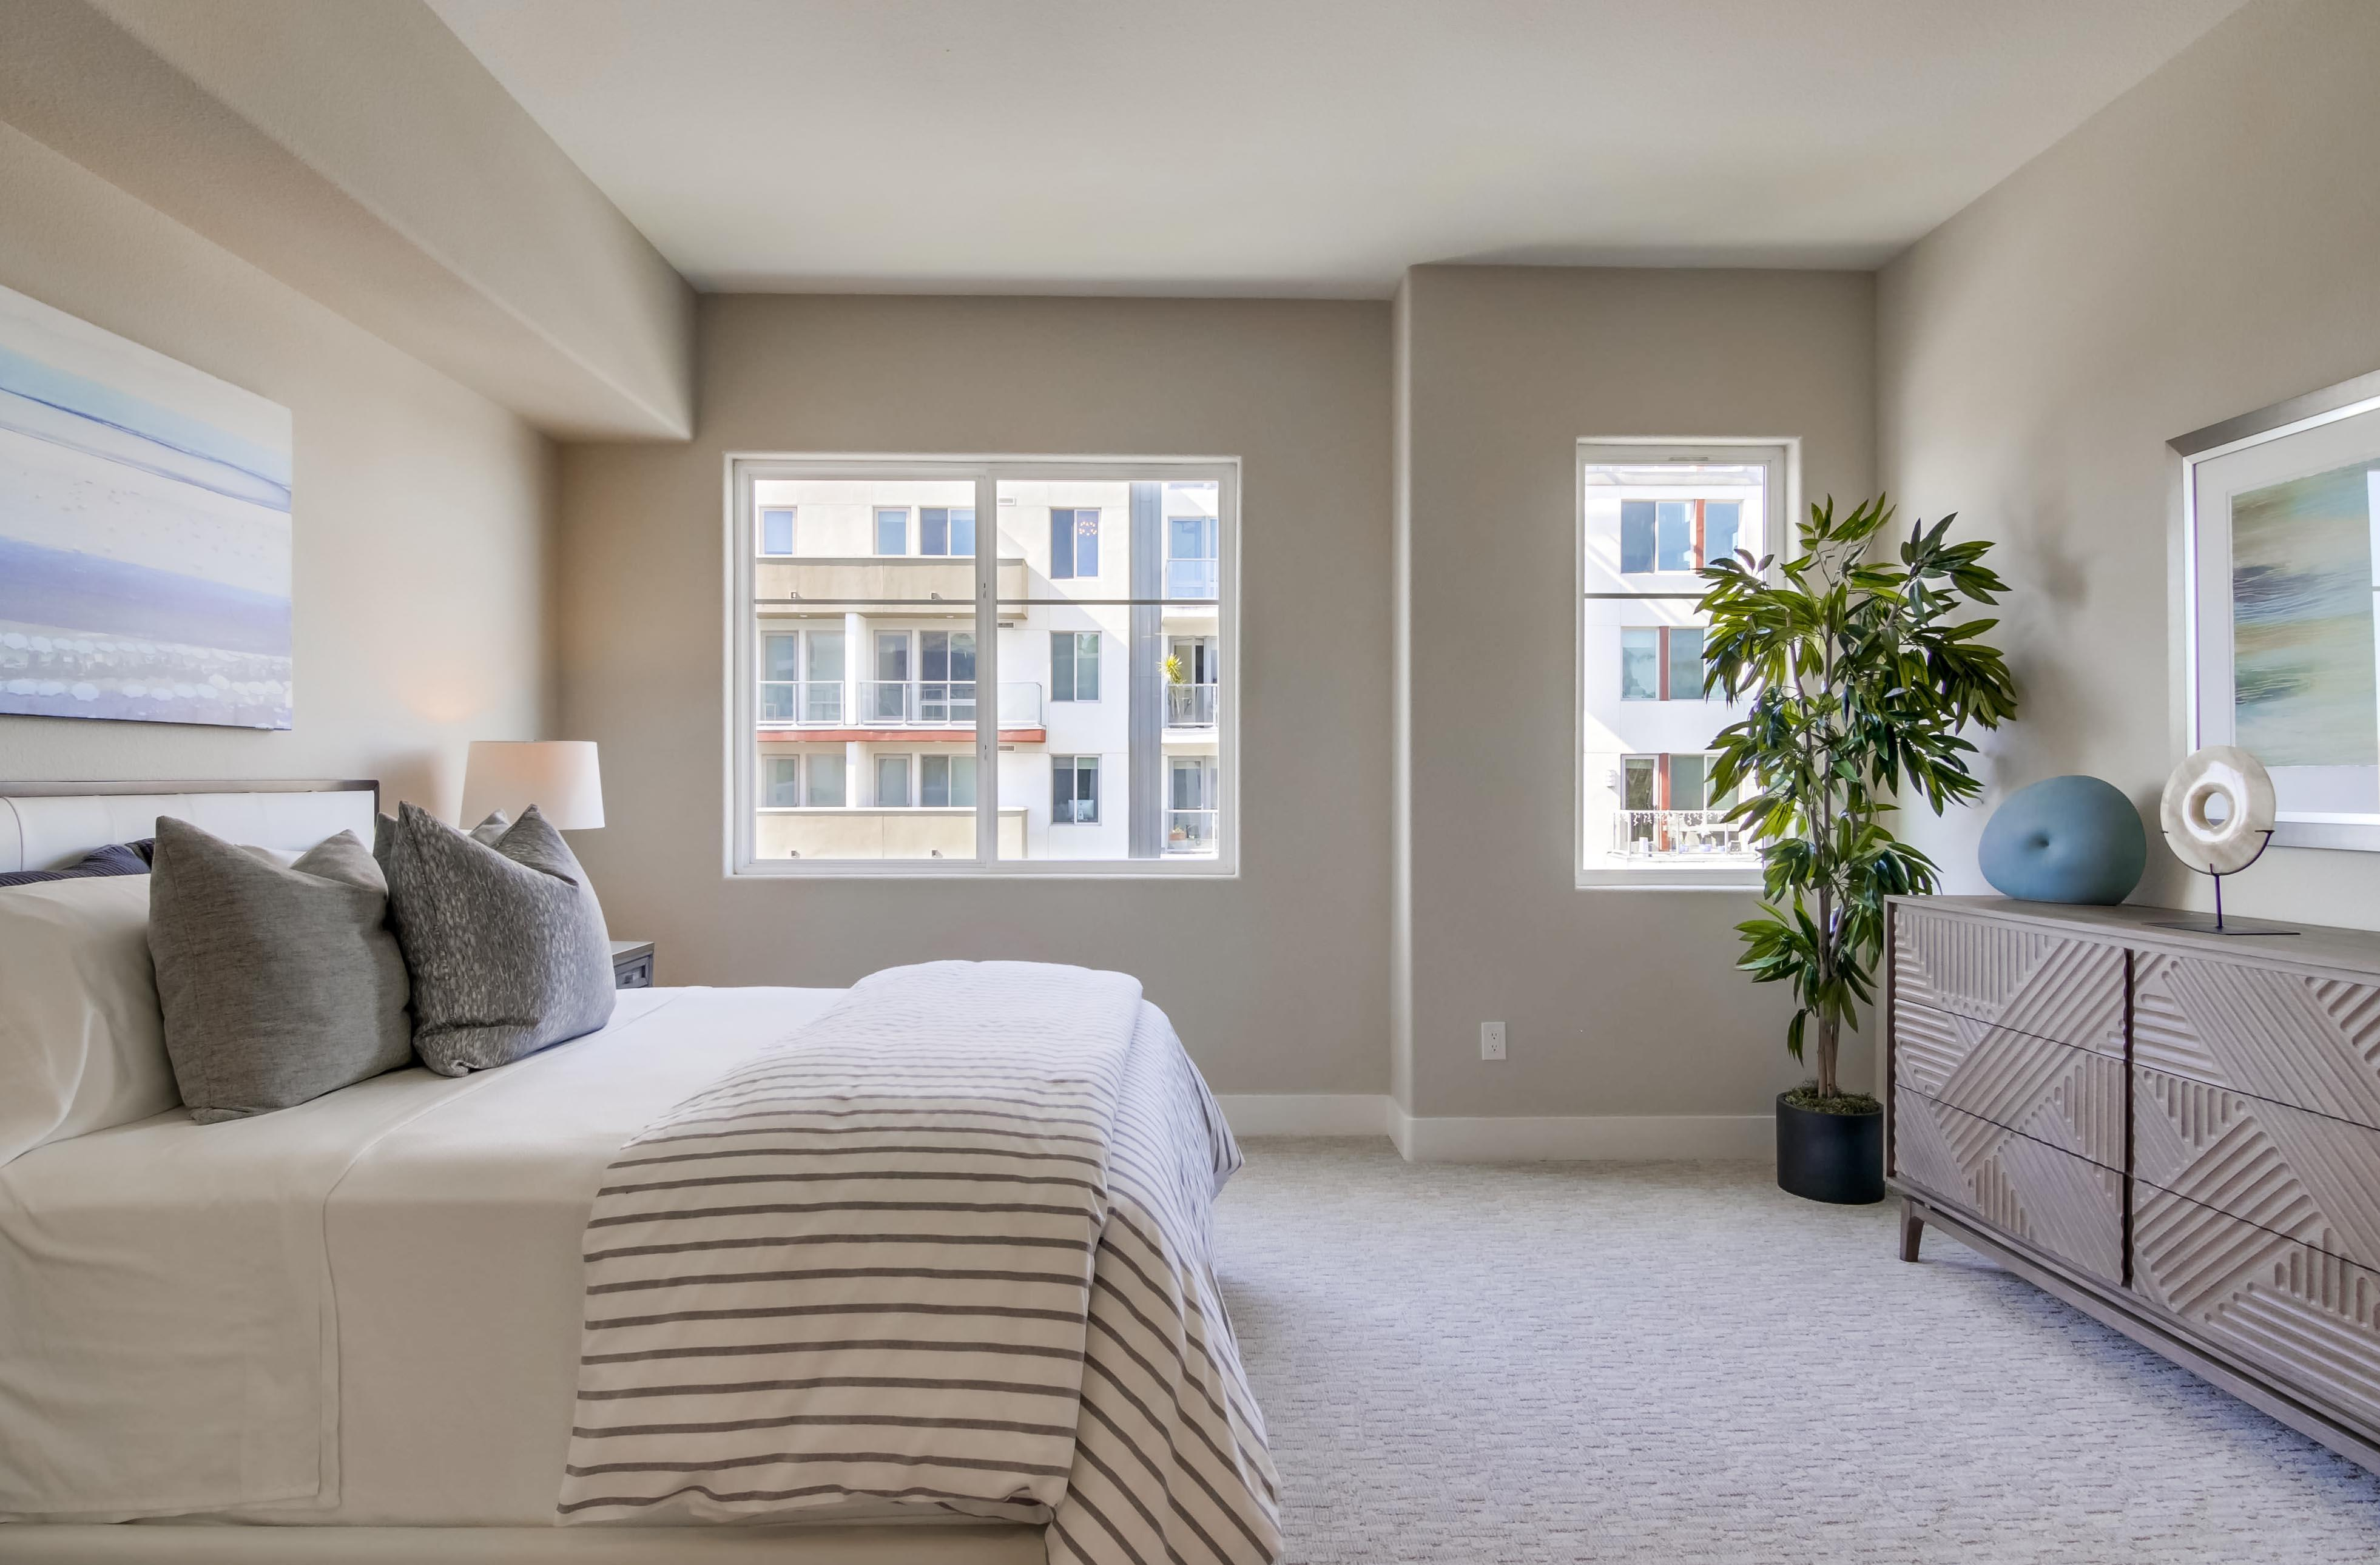 Bedroom featured in the #403 By Next Space Dev - Epic on 5th in San Diego, CA